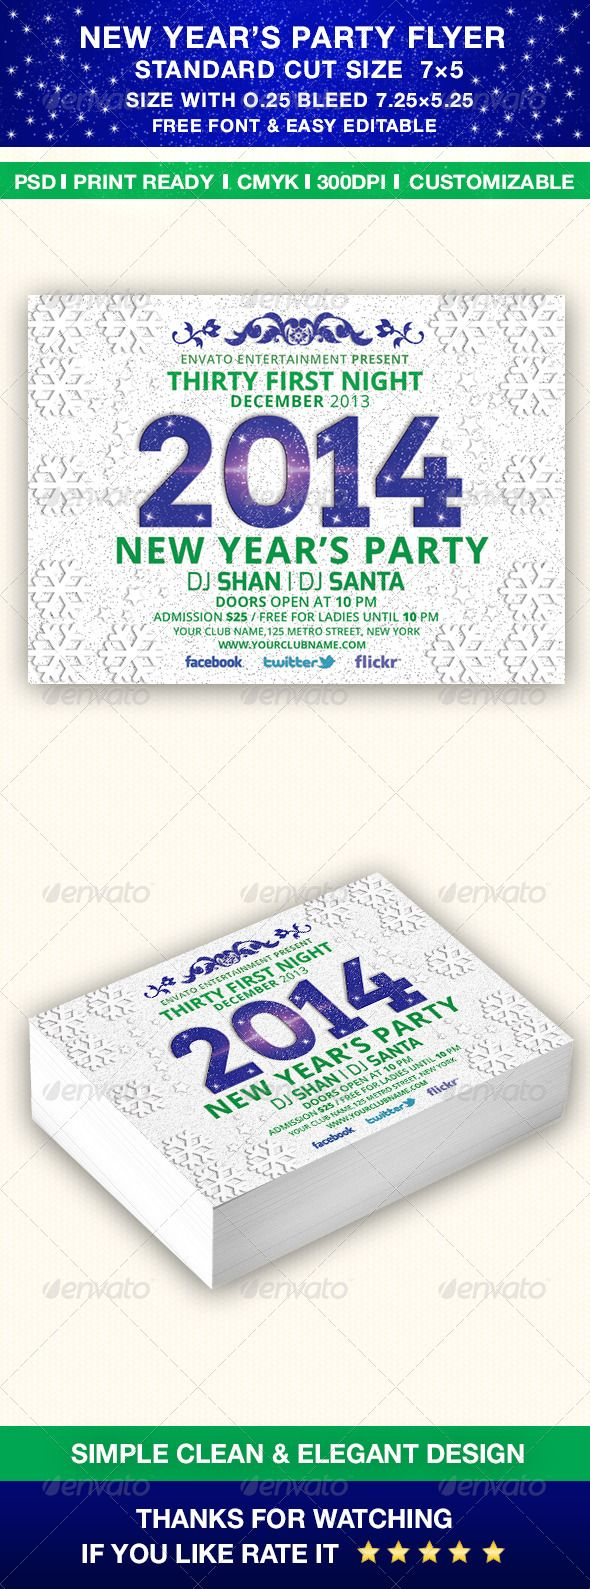 best images about print templates fonts flyer buy new year s 2014 party flyer template by on graphicriver new year s 2014 party flyer suitable for new year party amp new year related holiday wishing